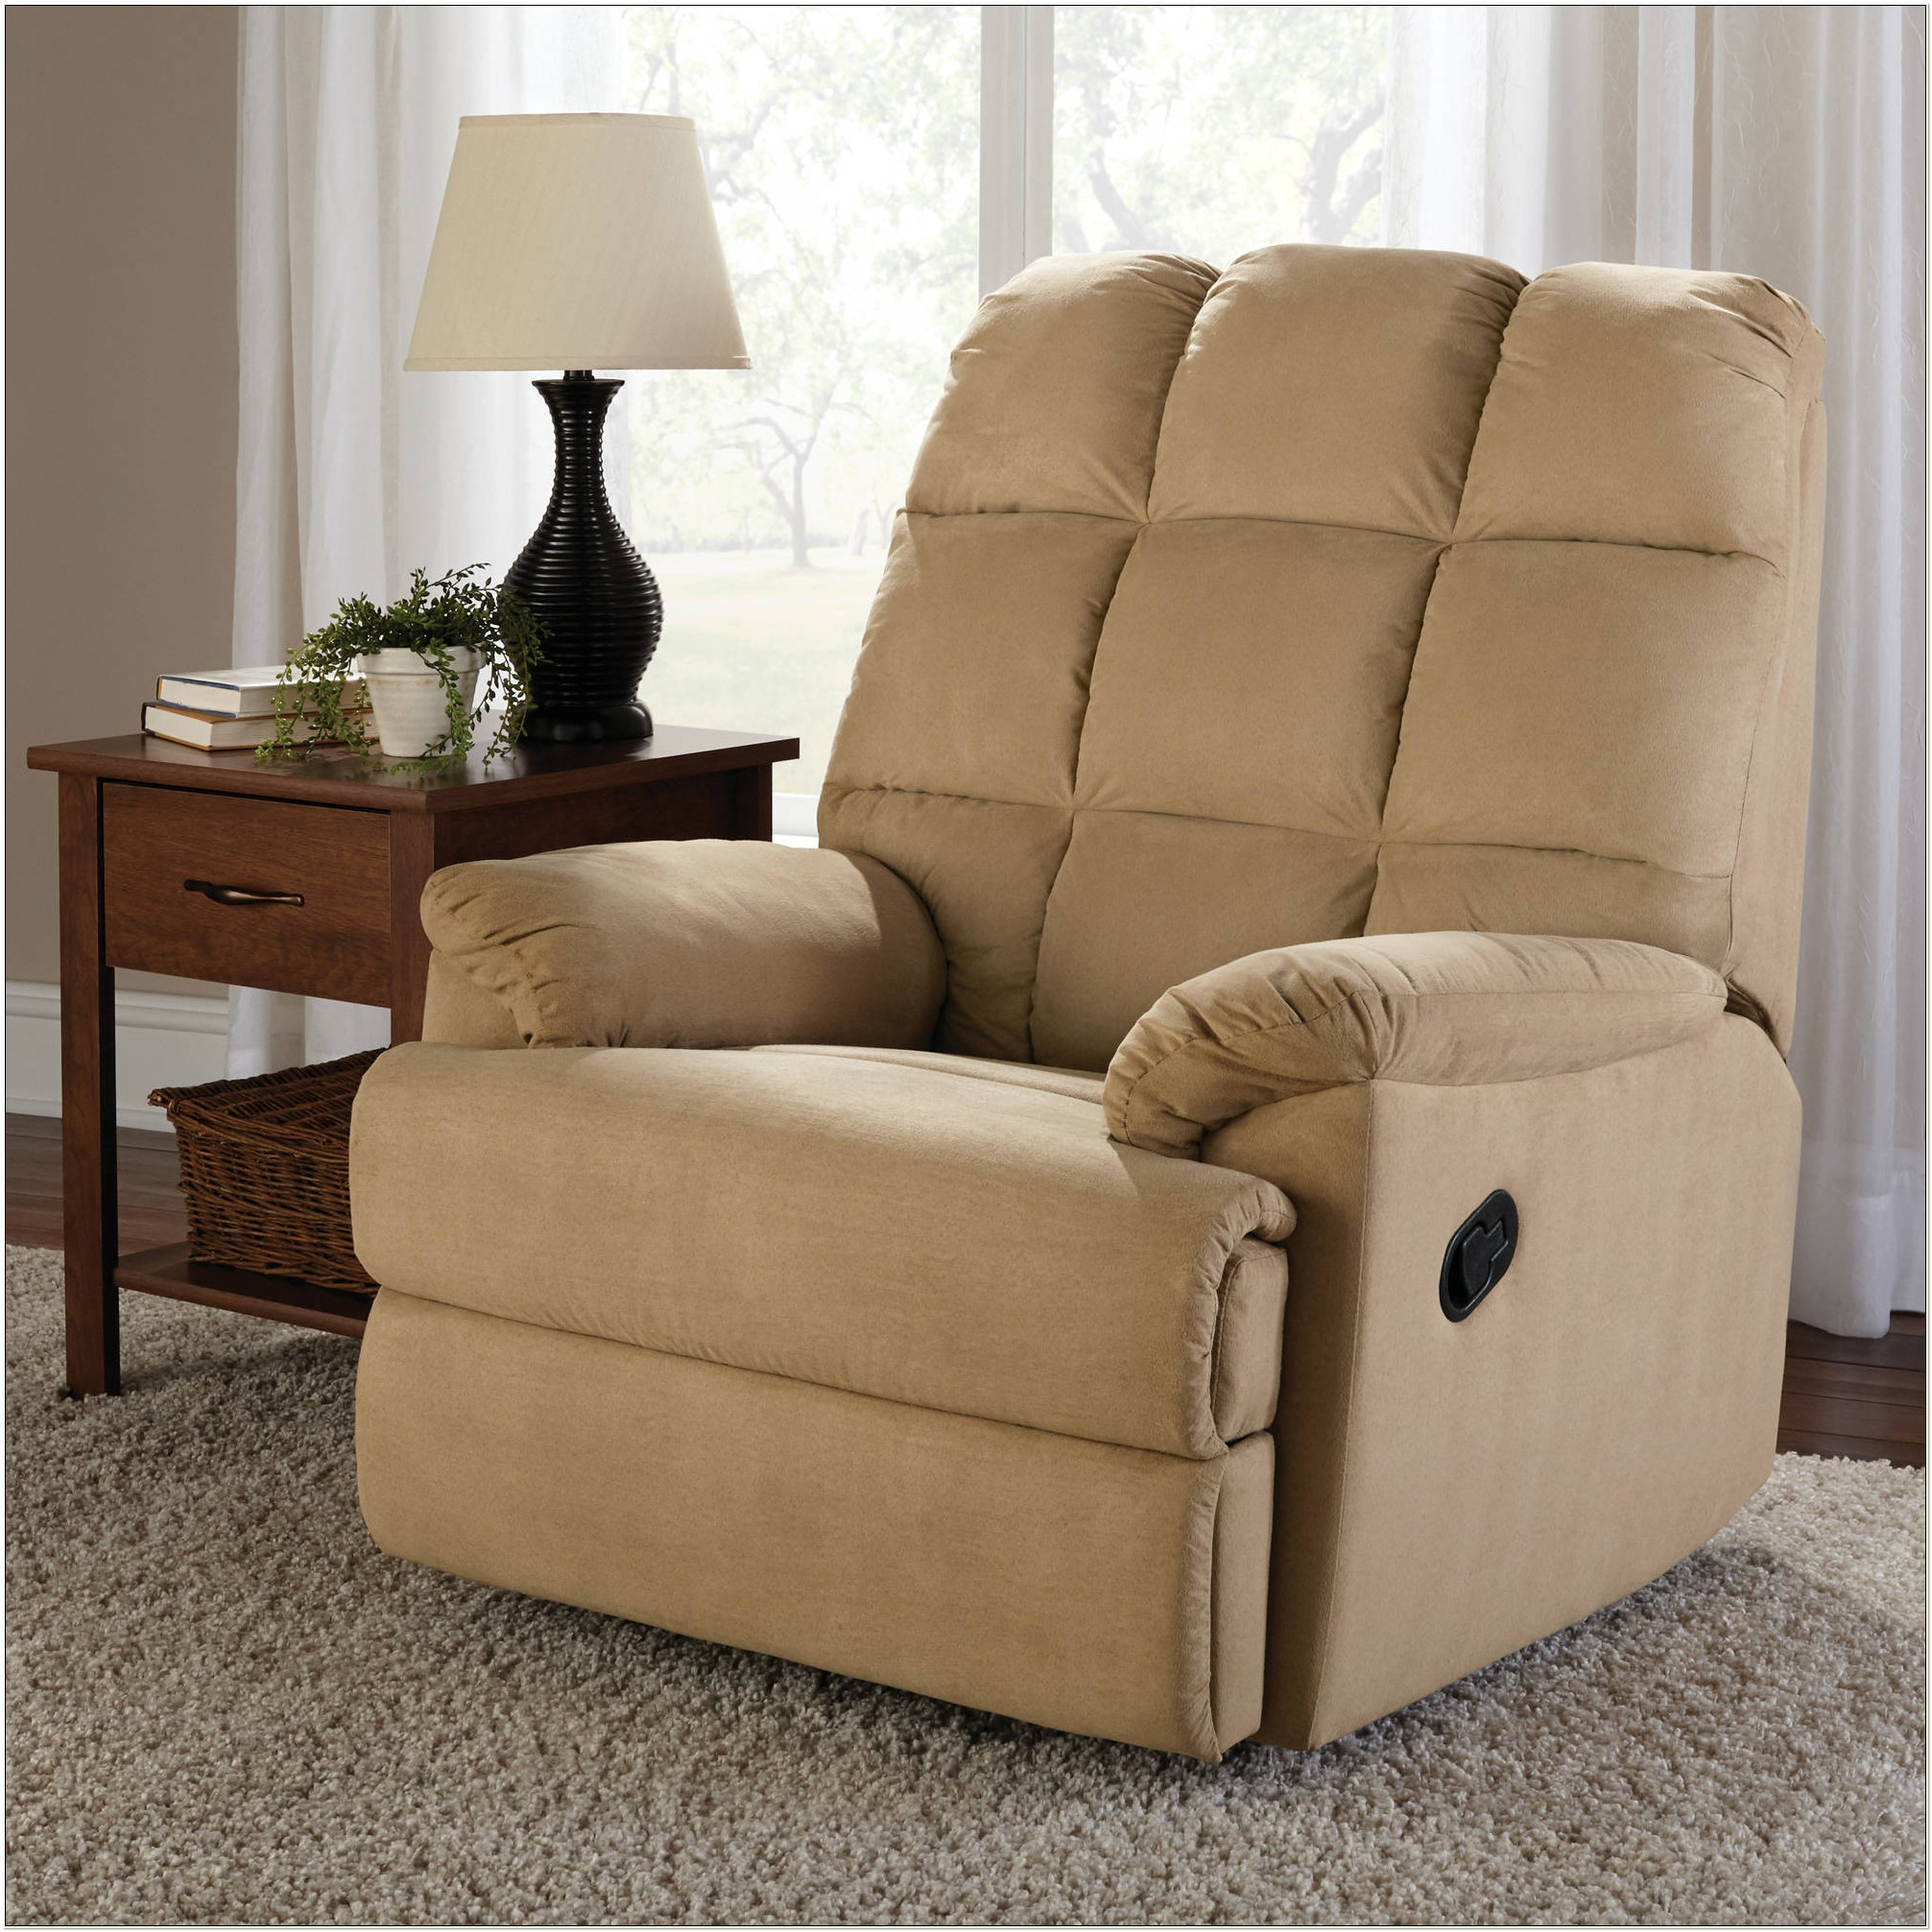 Walmart Lift Chairs Recliners